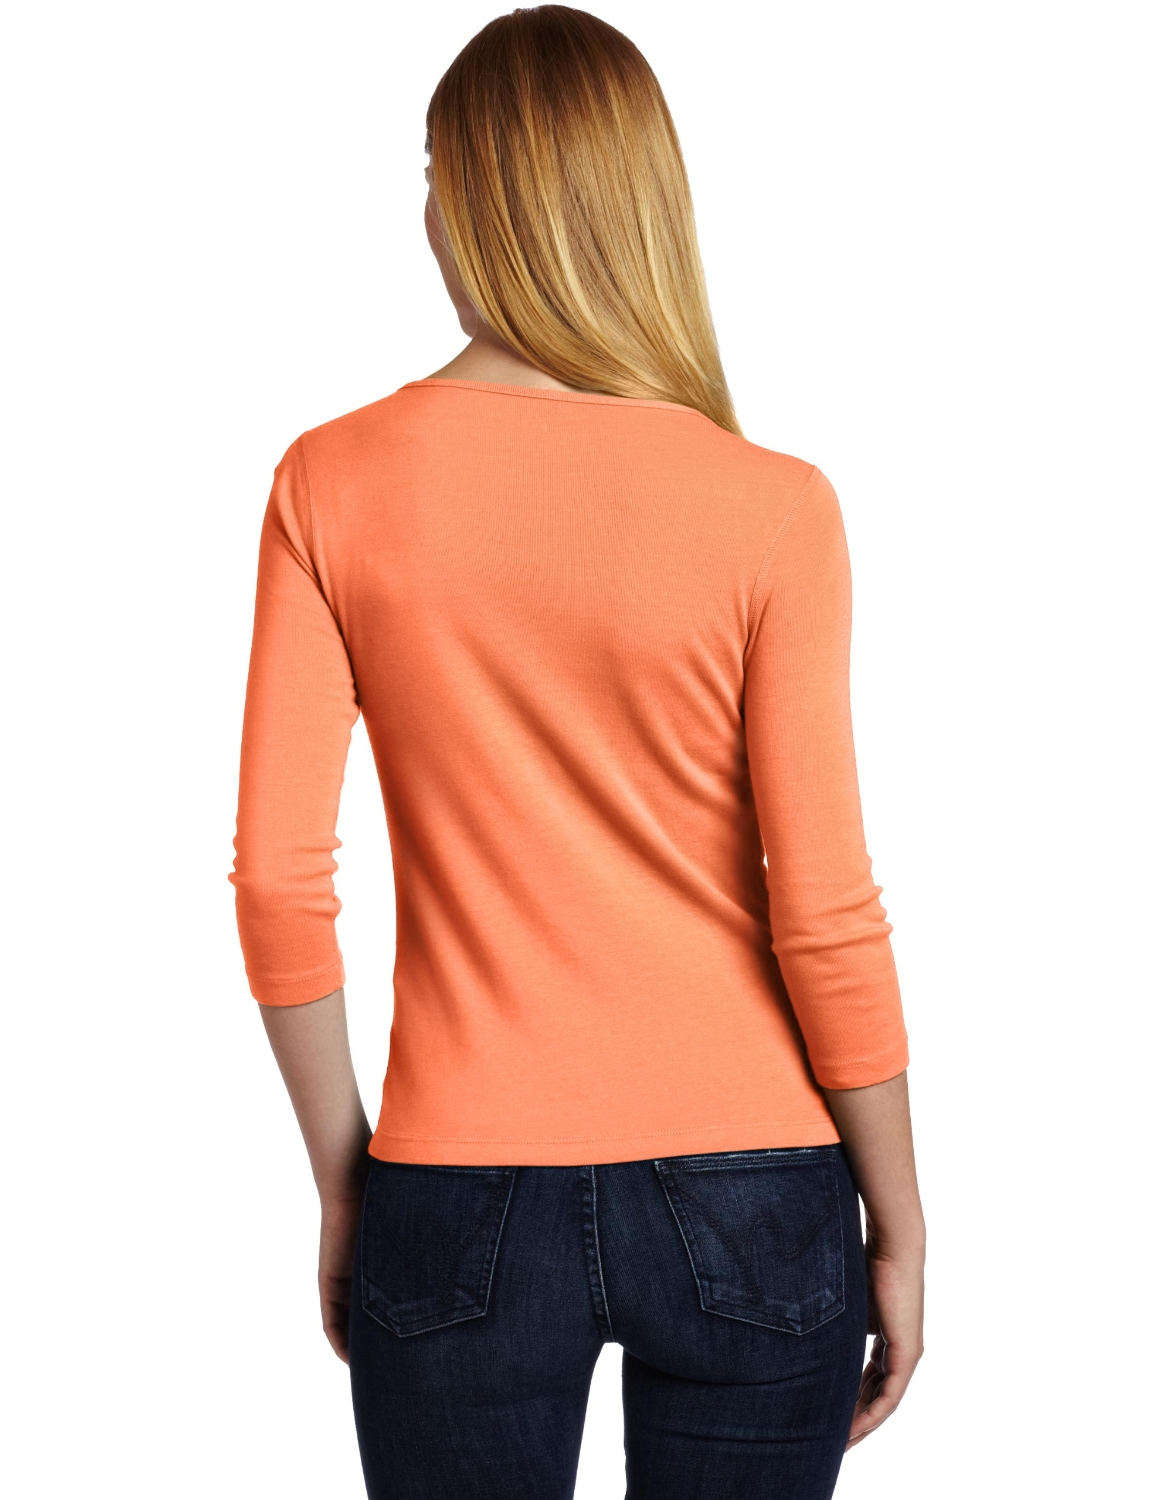 Find cowl neck tops for women at ShopStyle. Shop the latest collection of cowl neck tops for women from the most popular stores - all in one place.